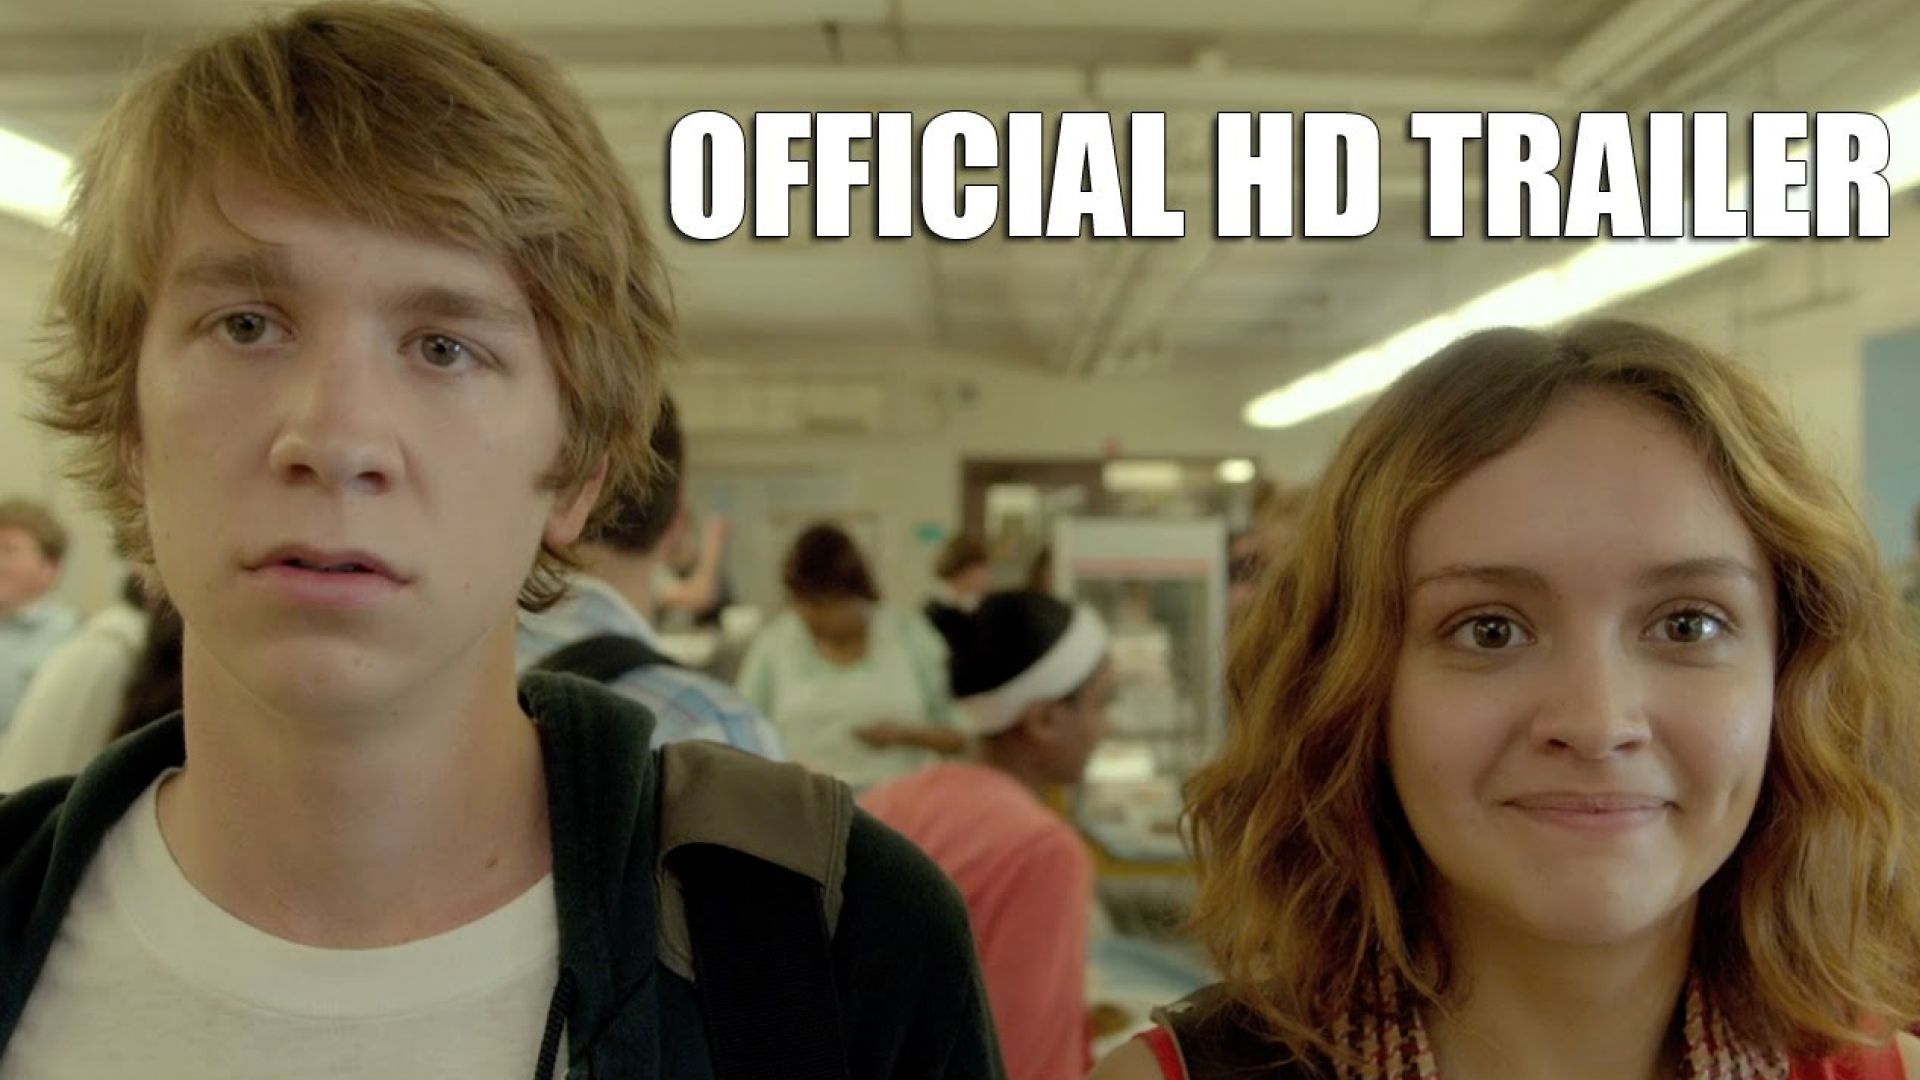 Official Trailer for 'Me and Earl and the Dying Girl'